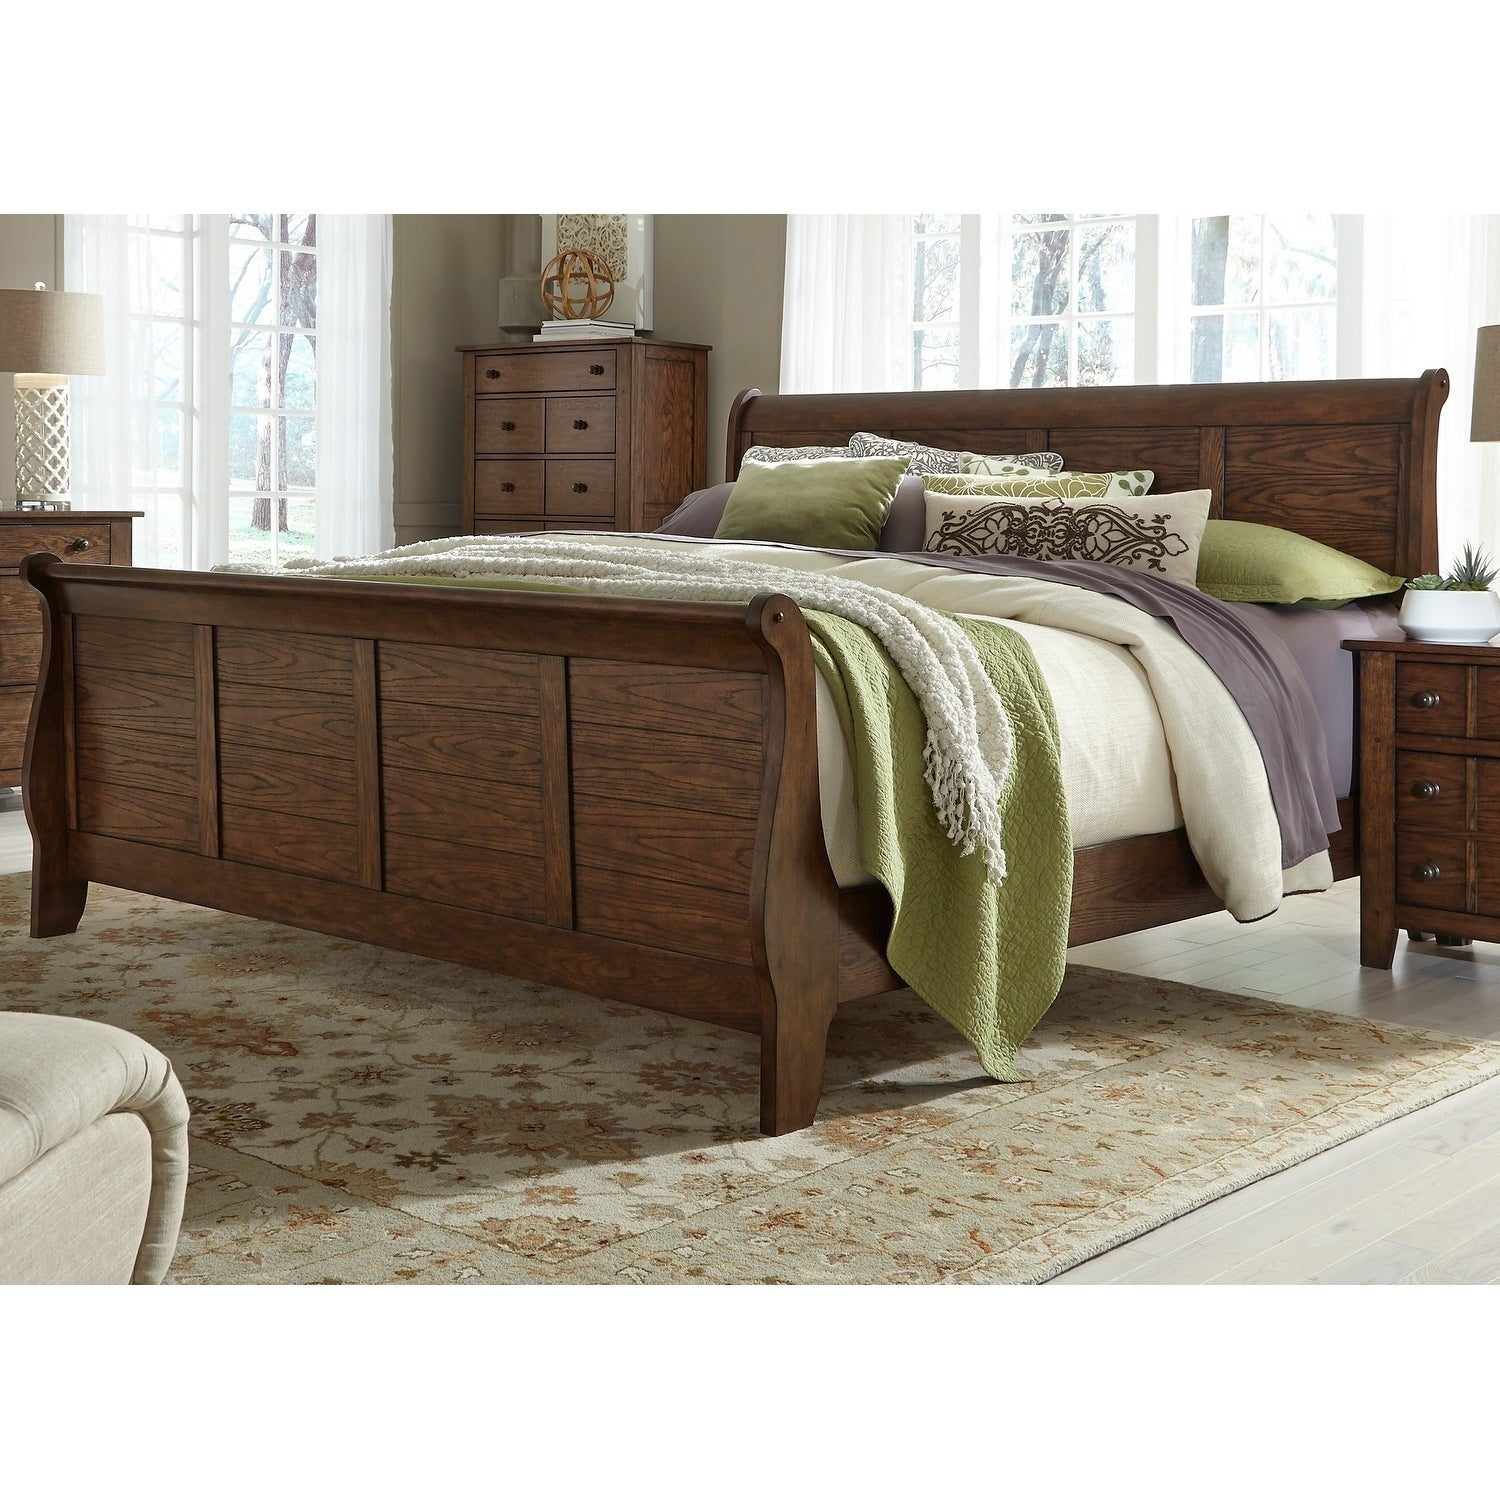 Grandpas Cabin Pebble Rock King Sleigh Bed - Free Shipping Today ...